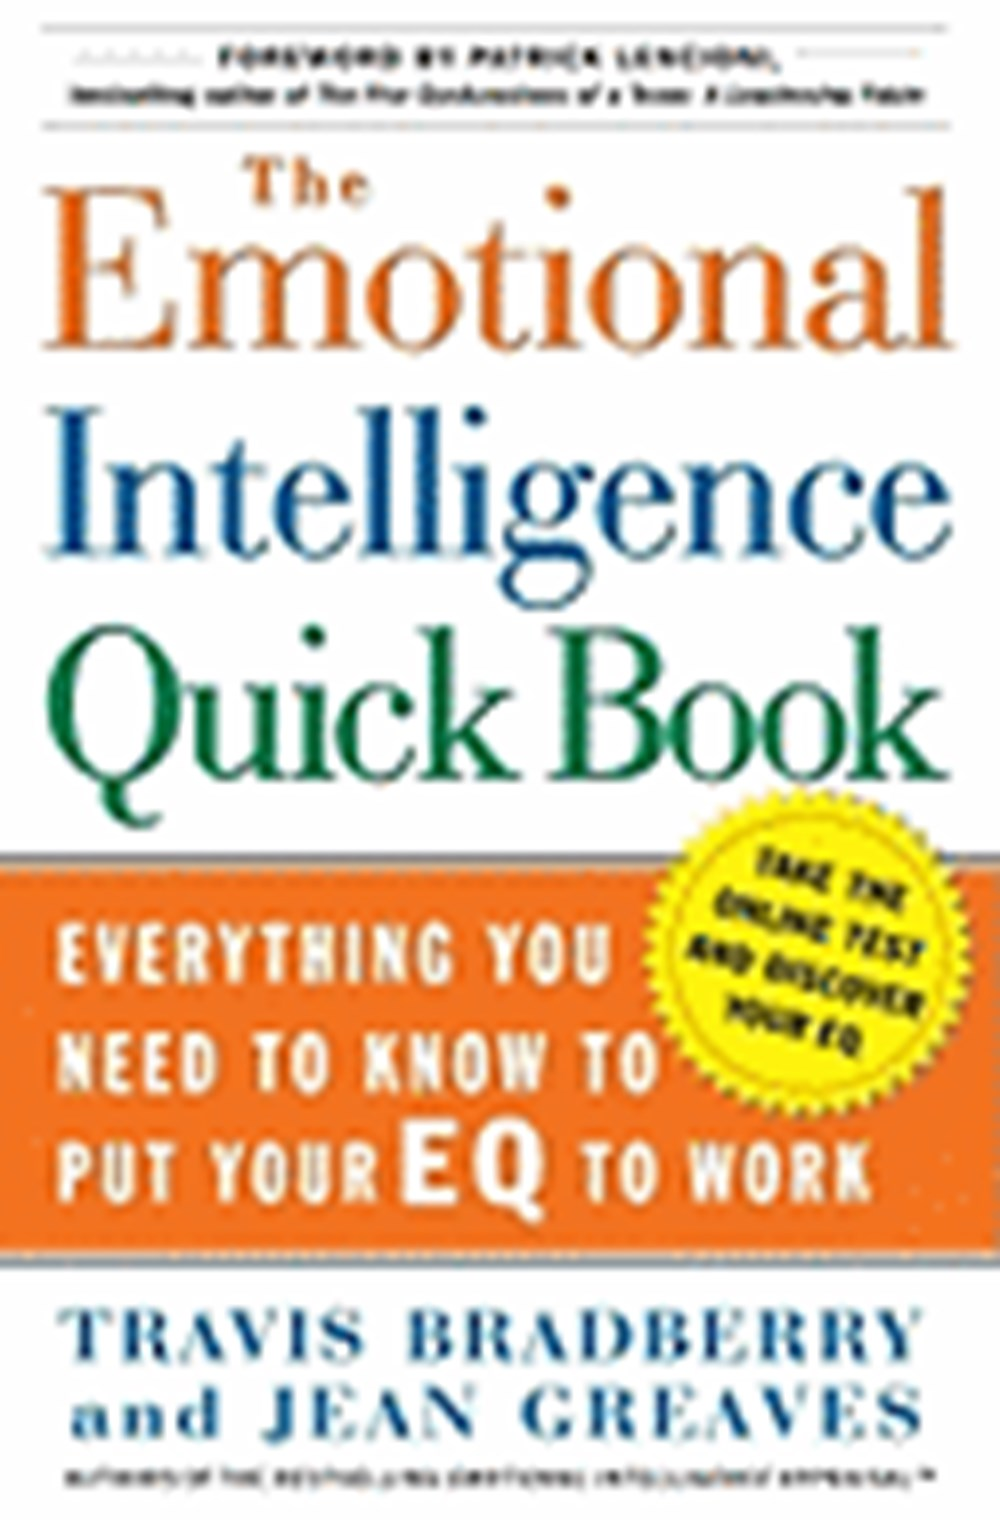 Emotional Intelligence Quick Book Everything You Need to Know to Put Your Eq to Work